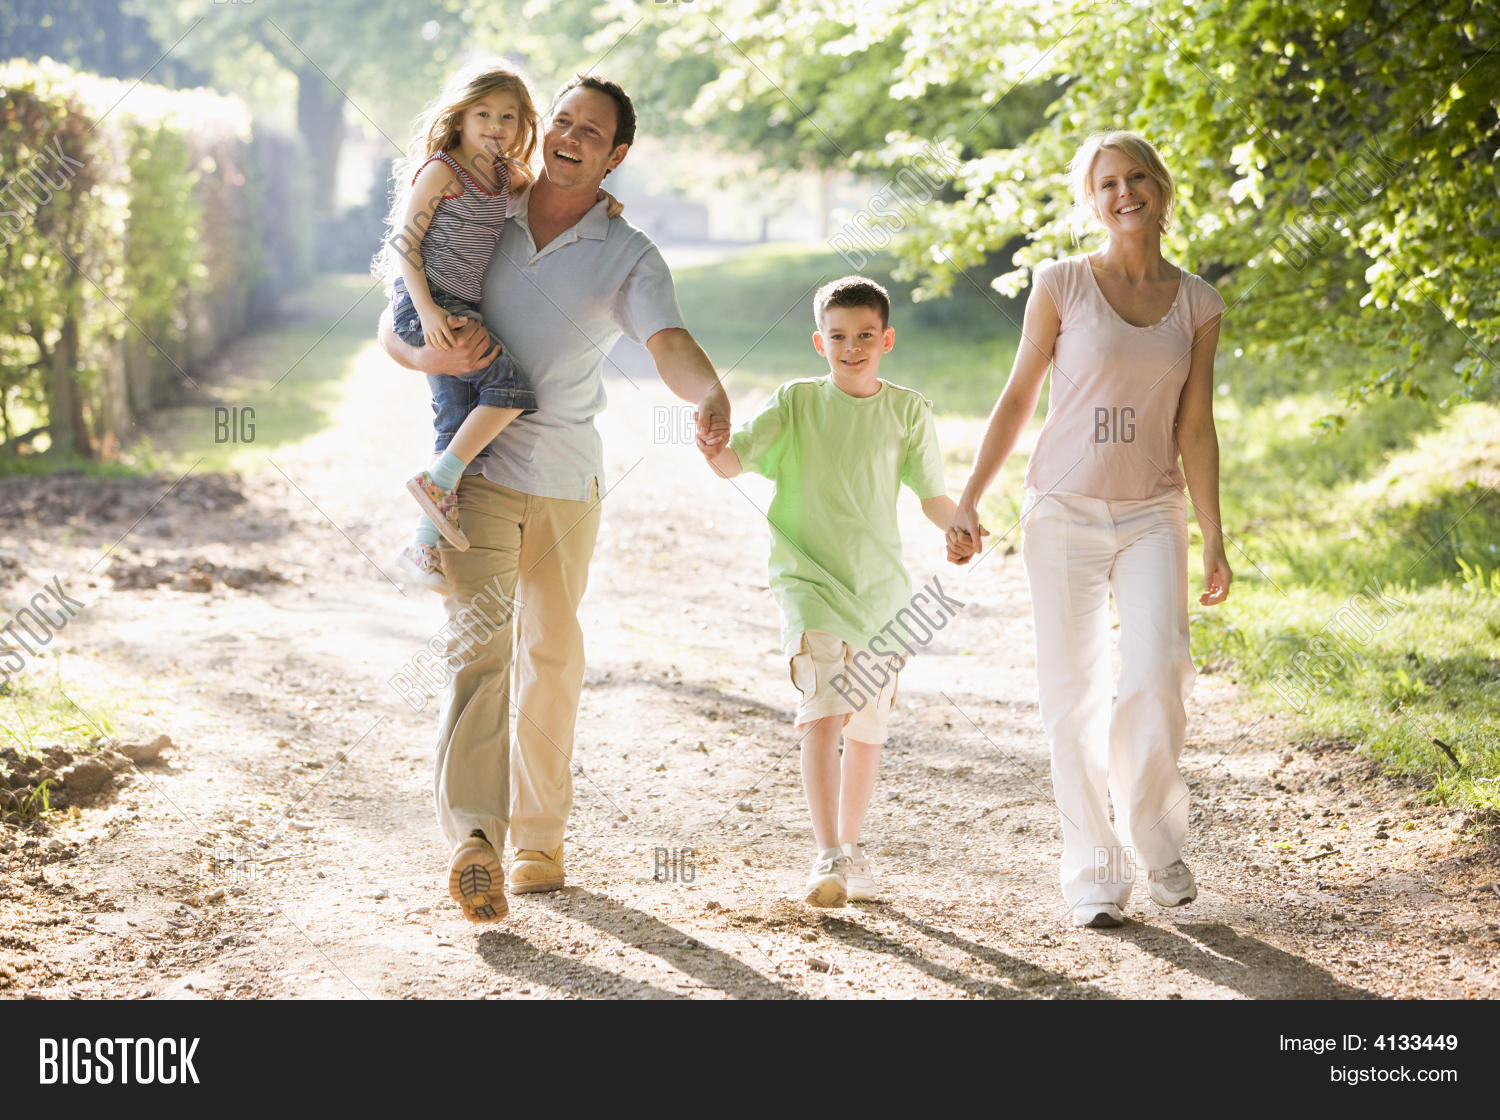 30s,active,Bike,boy,camera,caucasian,child,children,countryside,dad,daughter,Day,Daytime,Enjoying,exercise,exercising,Families,family walking,father,Female,fit,four,Full,fun,girl,Happy,having,healthy,healthy family,Length,Looking,male,man,mom,mother,mum,outdoor activities,outdoors,Outside,parent,park,people,Portrait,Ride,Riding,Smile,Smiling,son,Thirties,together,Trail,vertical,walk,walking,woman,woman exercising,young